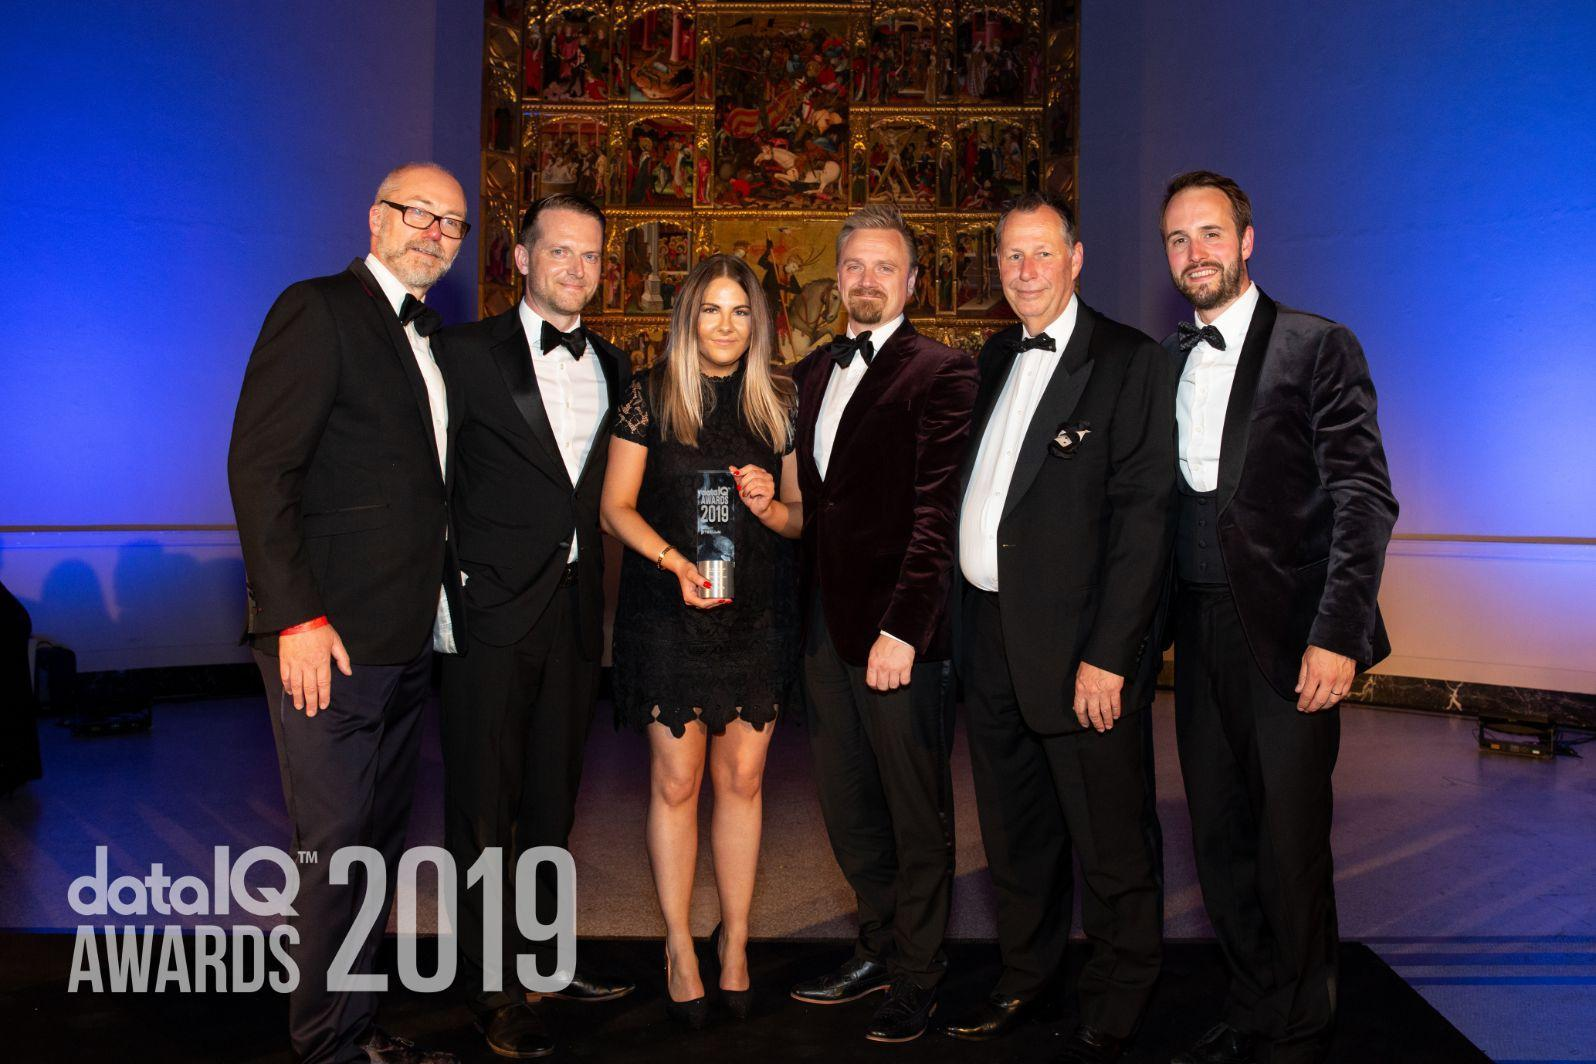 Culture of trust leads Co-op to data privacy award win